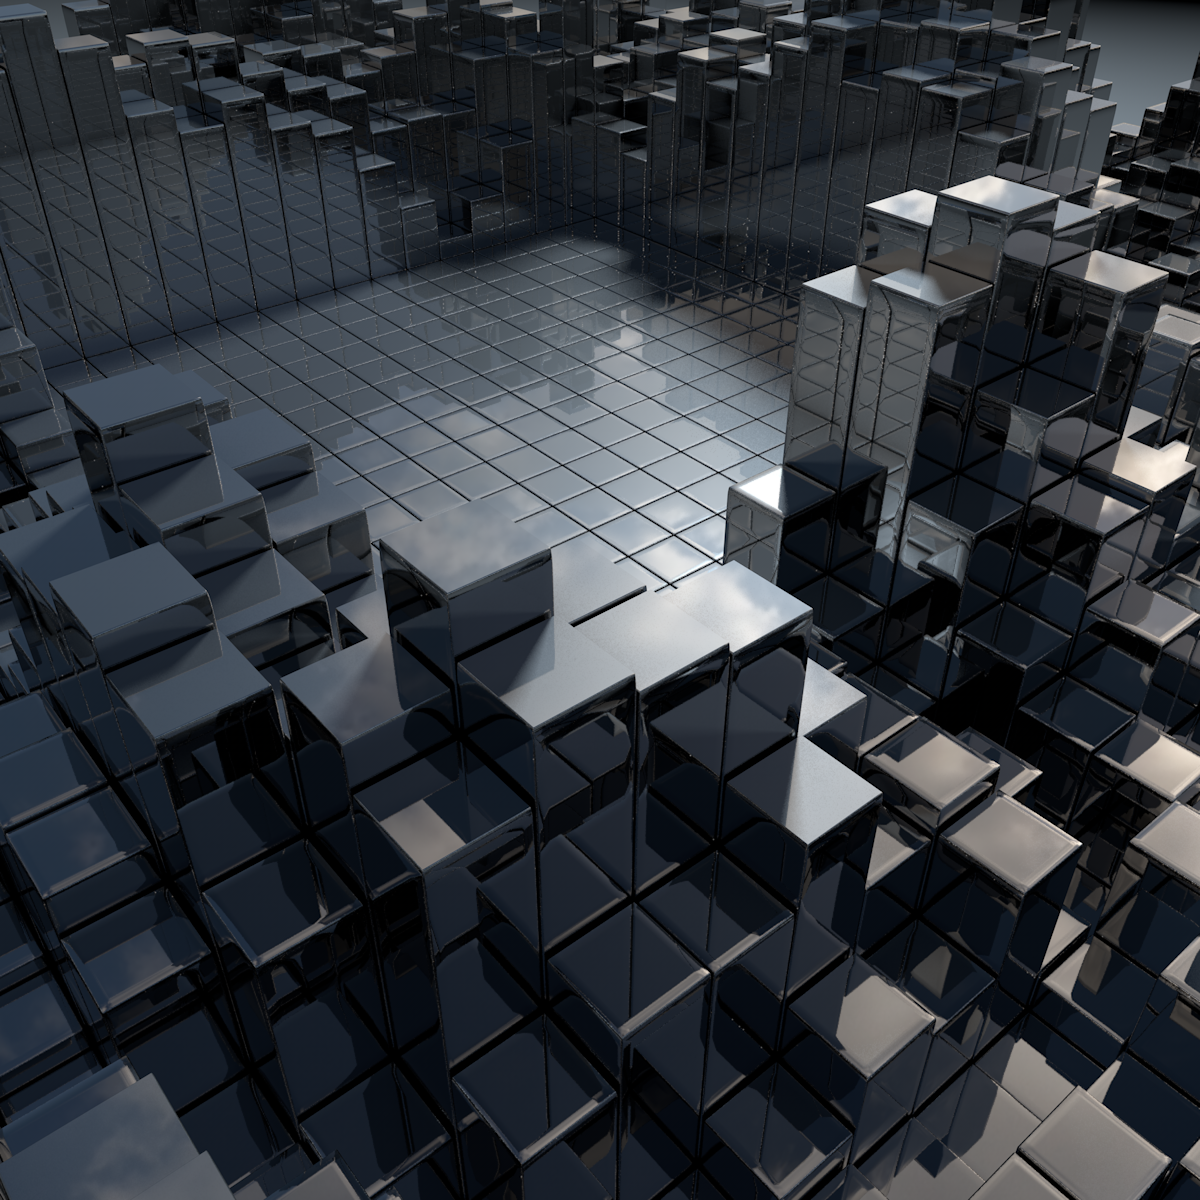 Cubes (Basic mograph, Cinema 4D Physical renderer)